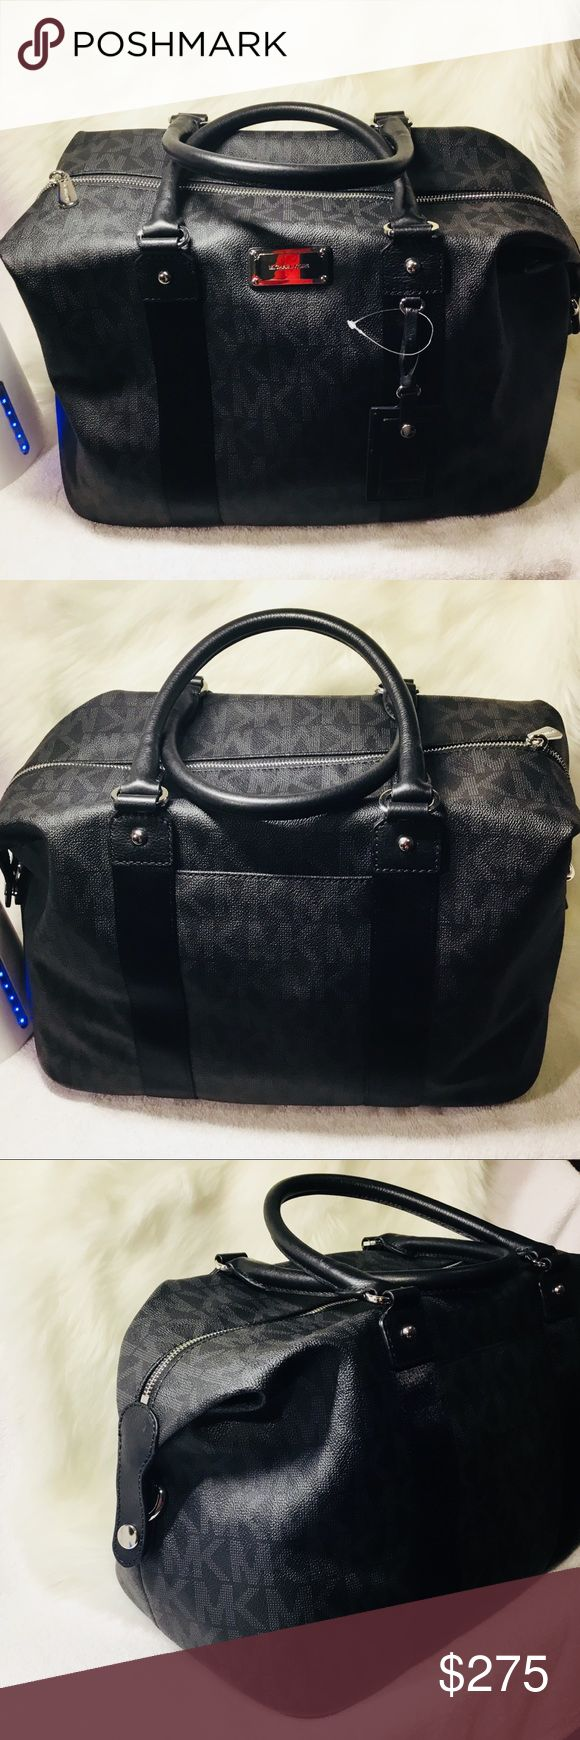 """Michael Kors Travel Large Weekender Black Bag Nice PVC coated, Trim and handles in black leather Dual rolled leather handles have 6"""" drop Removable and adjustable nylon shoulder strap with up to 26"""" drop Flat bottom with 4 silver tone feet Slip pocket on rear exterior Expandable sides Removable name/address tag Interior lining in tan signature fabric Top zipper closure with engraved pull 2 slip pockets on interior front wall 1 zipper pocket and 2 slip pockets on back wall Hardware is…"""